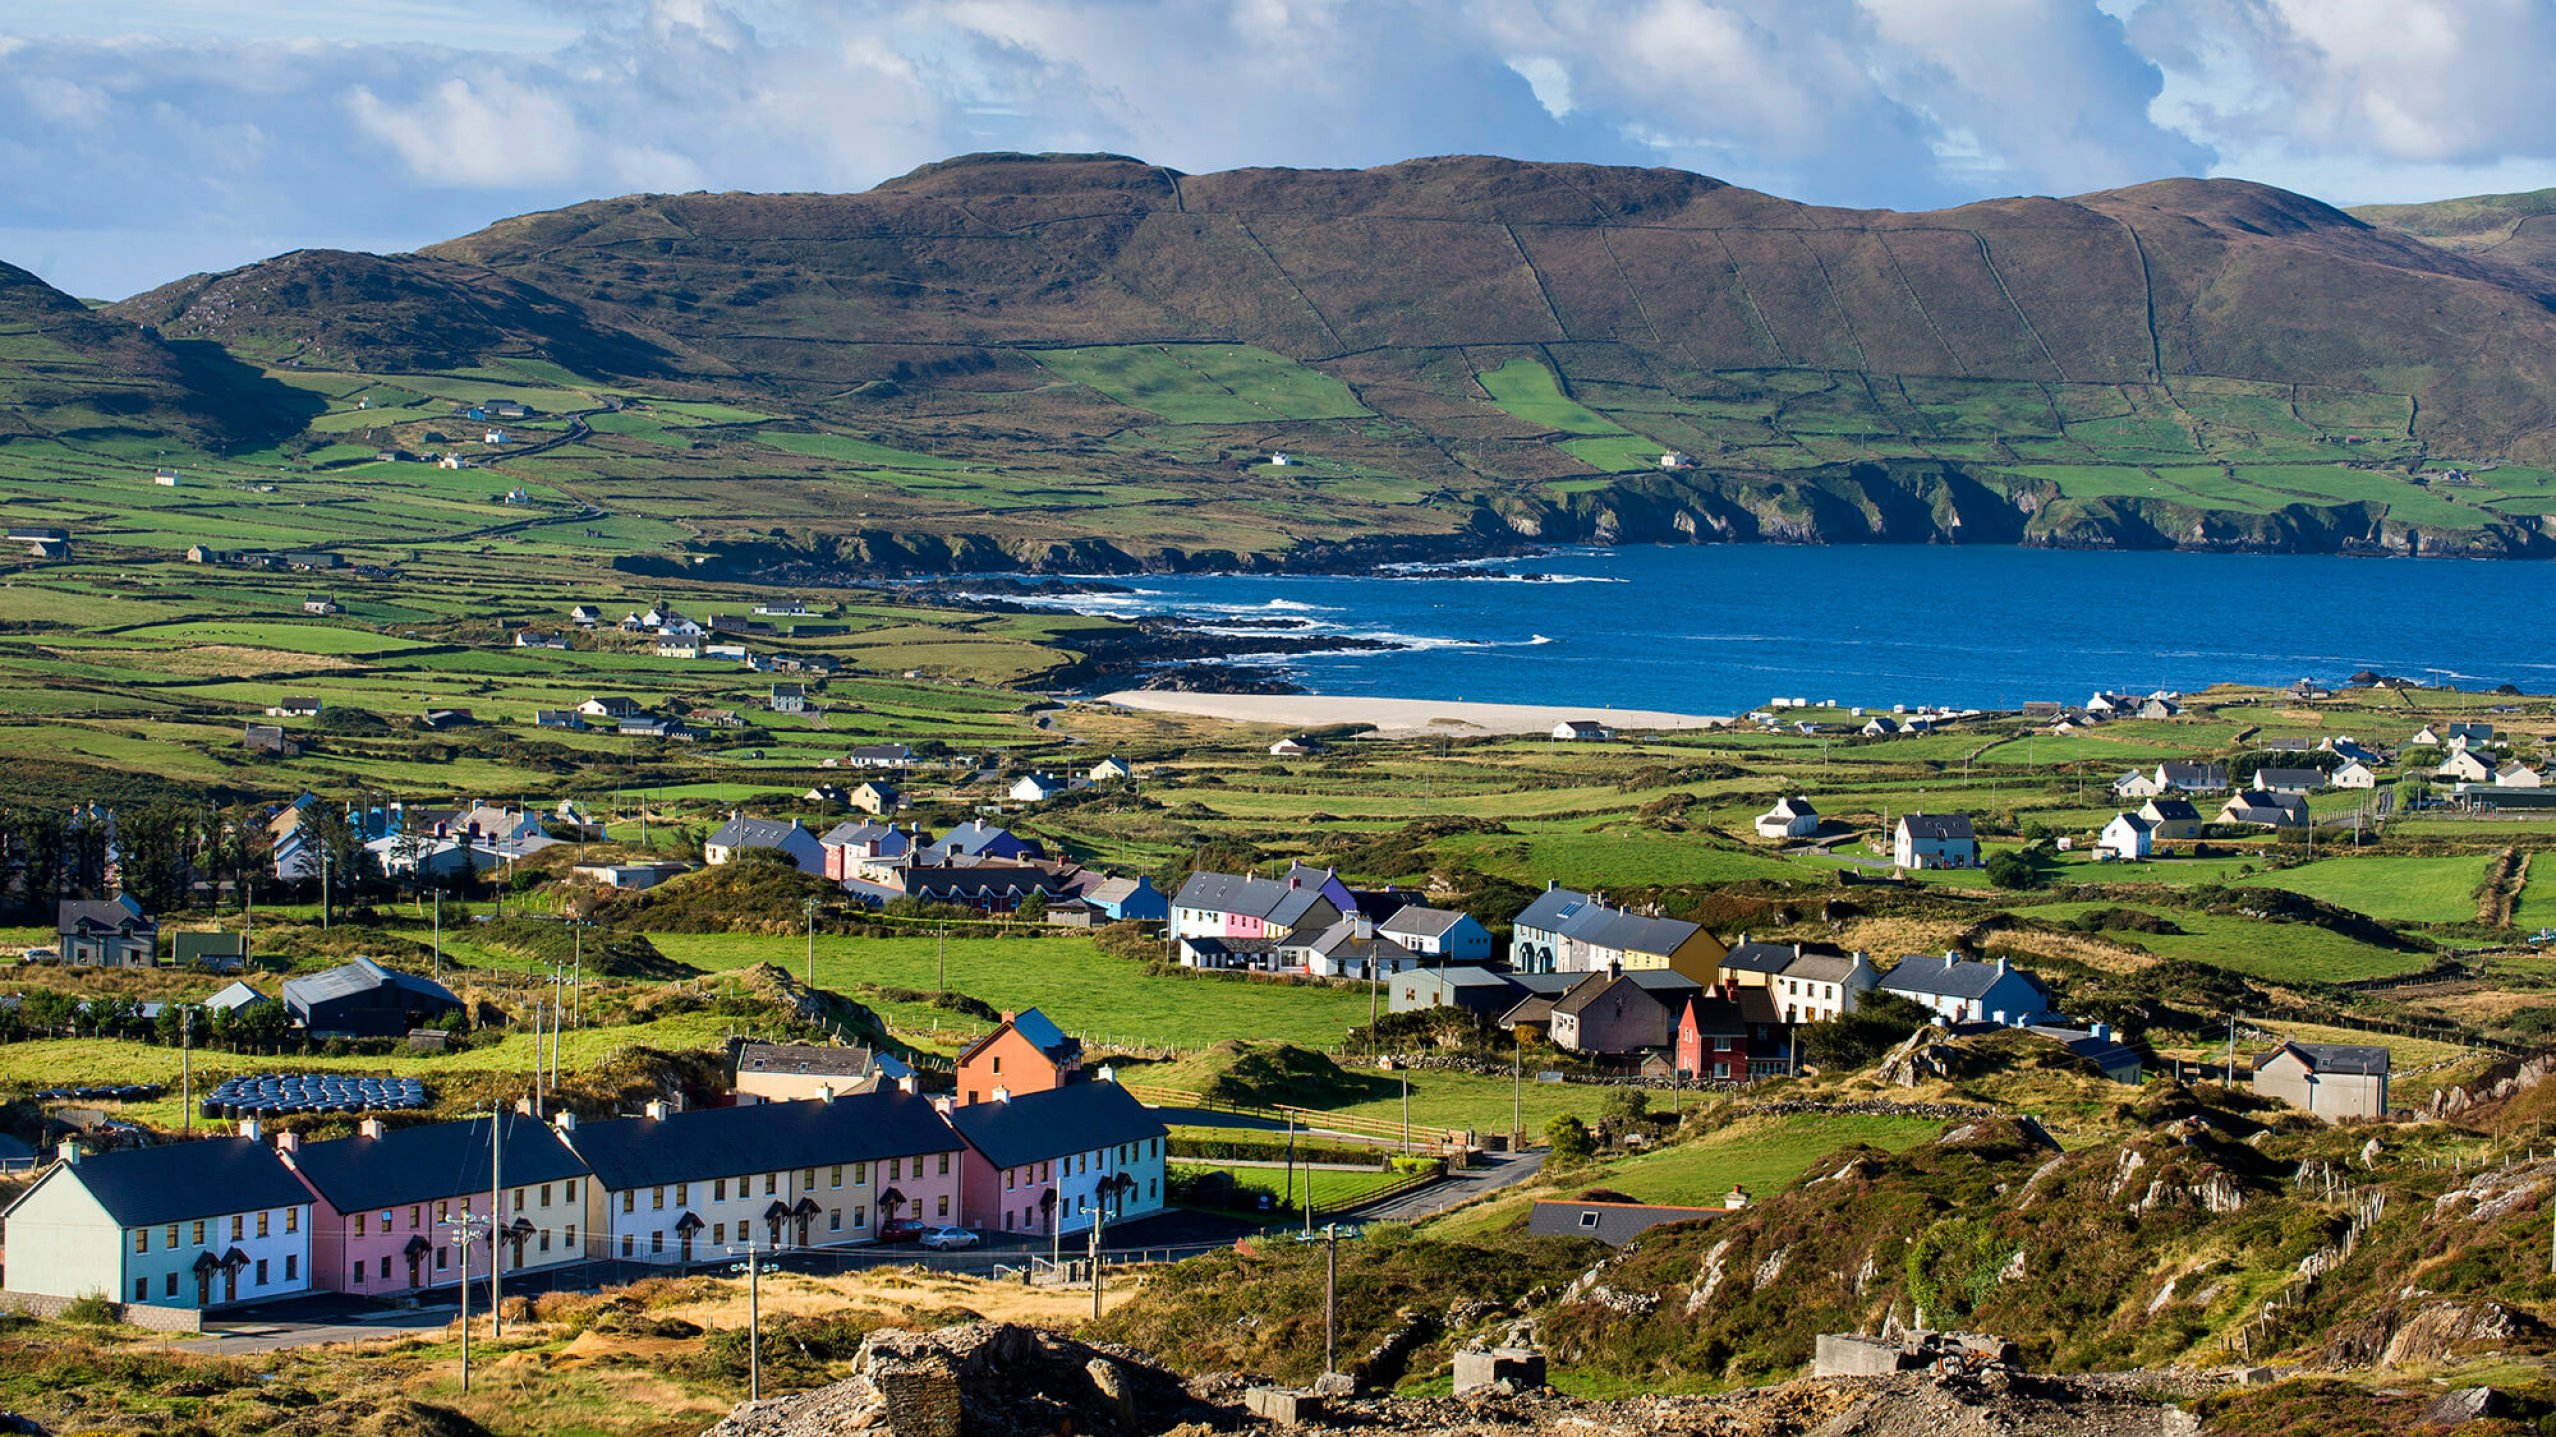 The colourful village of Allihies on the Beara peninsula, Ireland